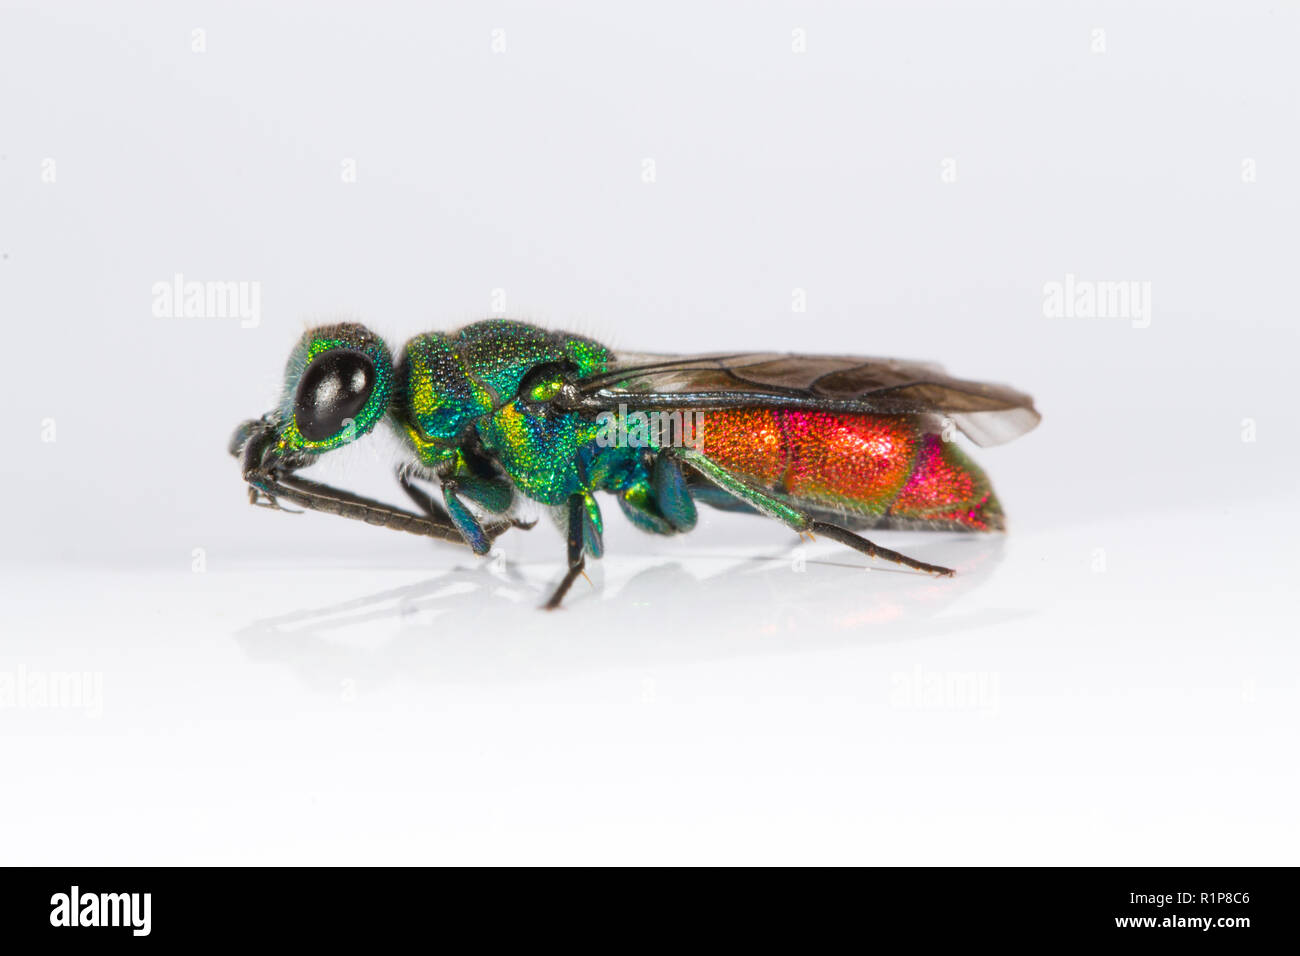 Ruby-tailed wasp (Chrysis sp.) adult female. Live insect photographed on a white background while cleaning her antaennae. Powys, Wales. June. - Stock Image